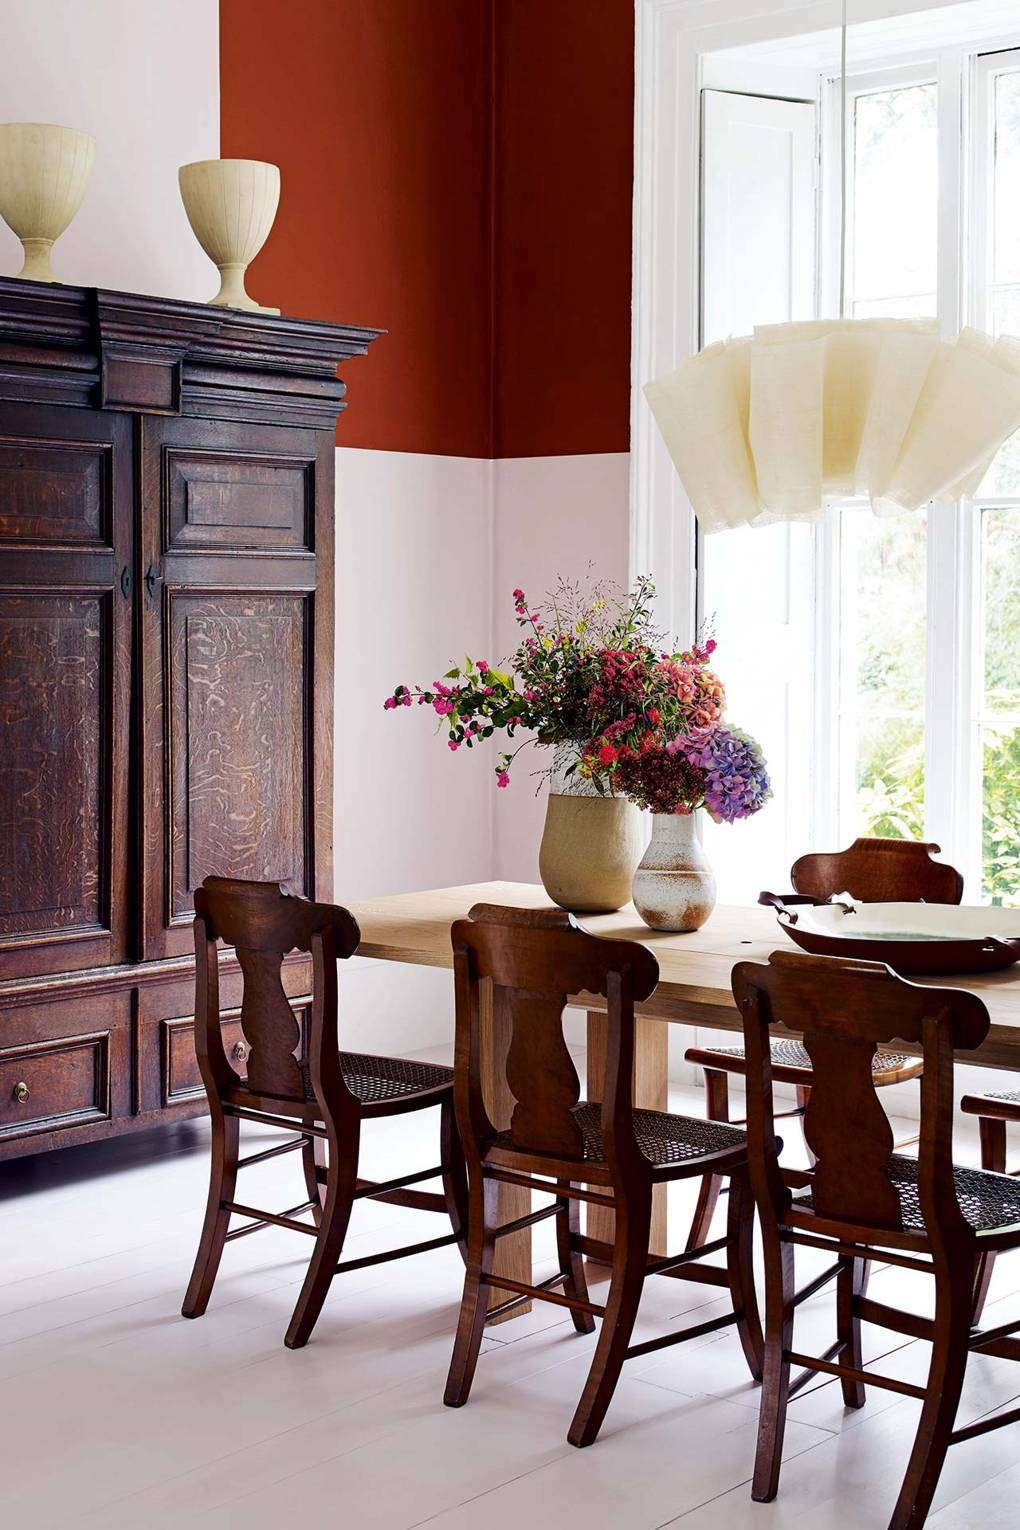 55c5be6e2bc How to use brown antique furniture in a modern home